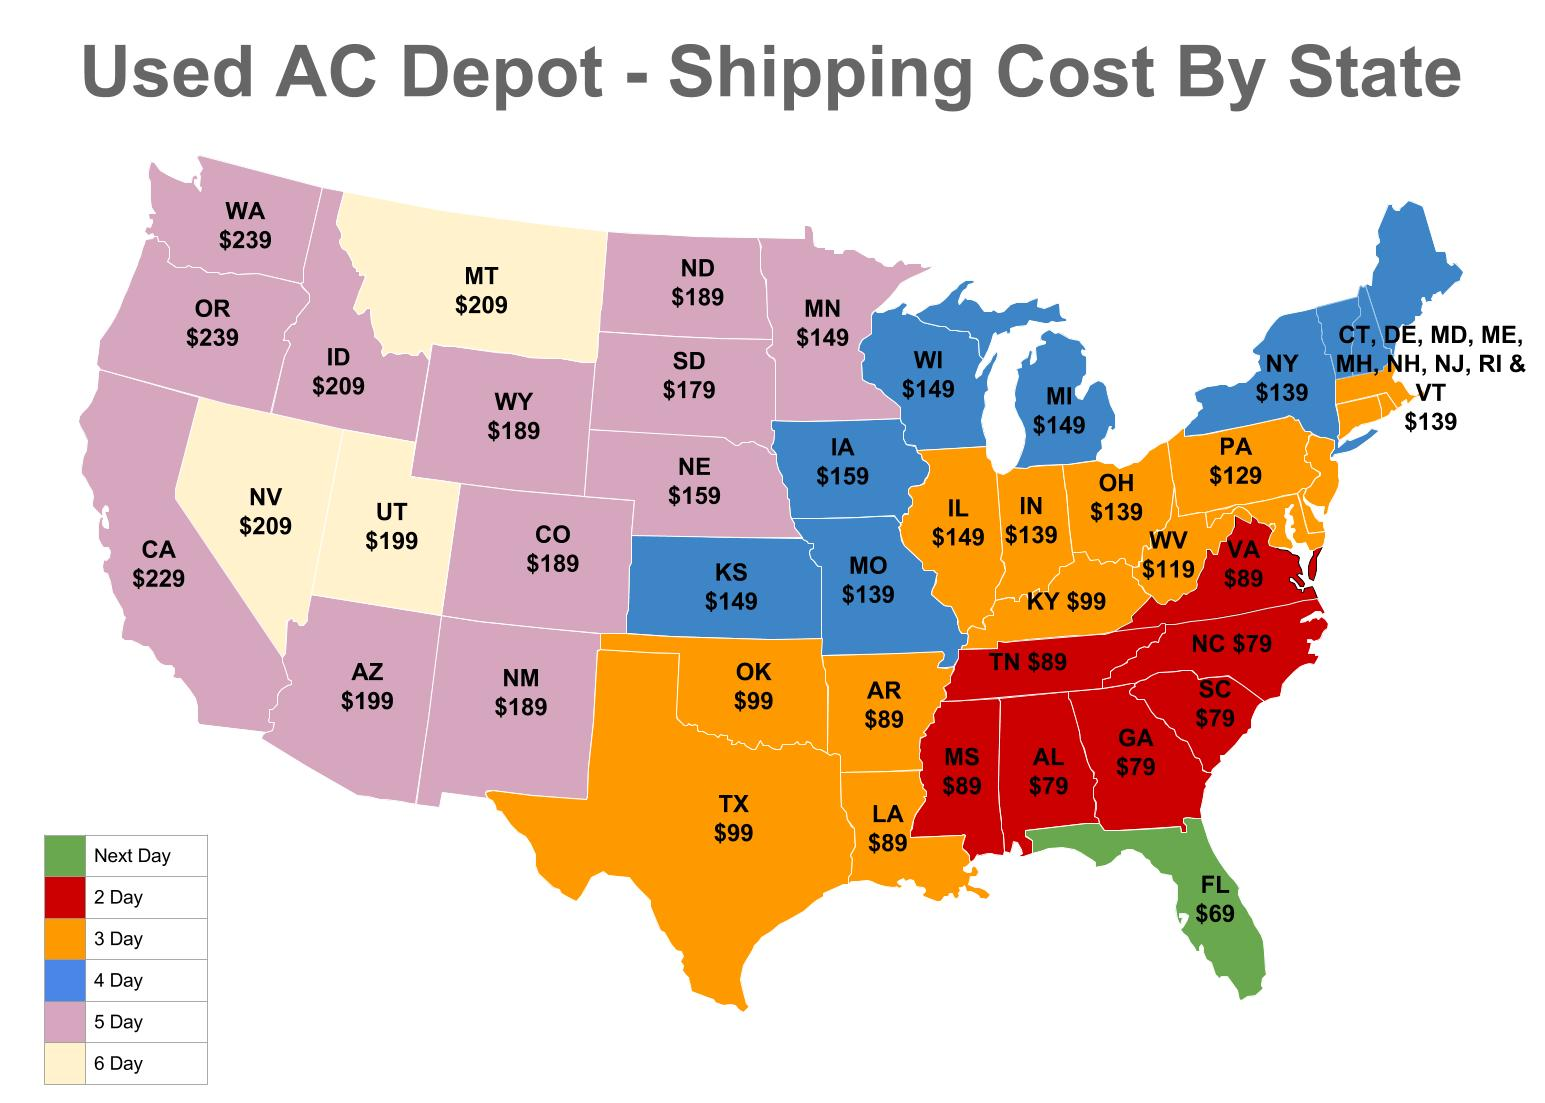 used-ac-depot-shipping-cost-by-state-8-7-15.jpg